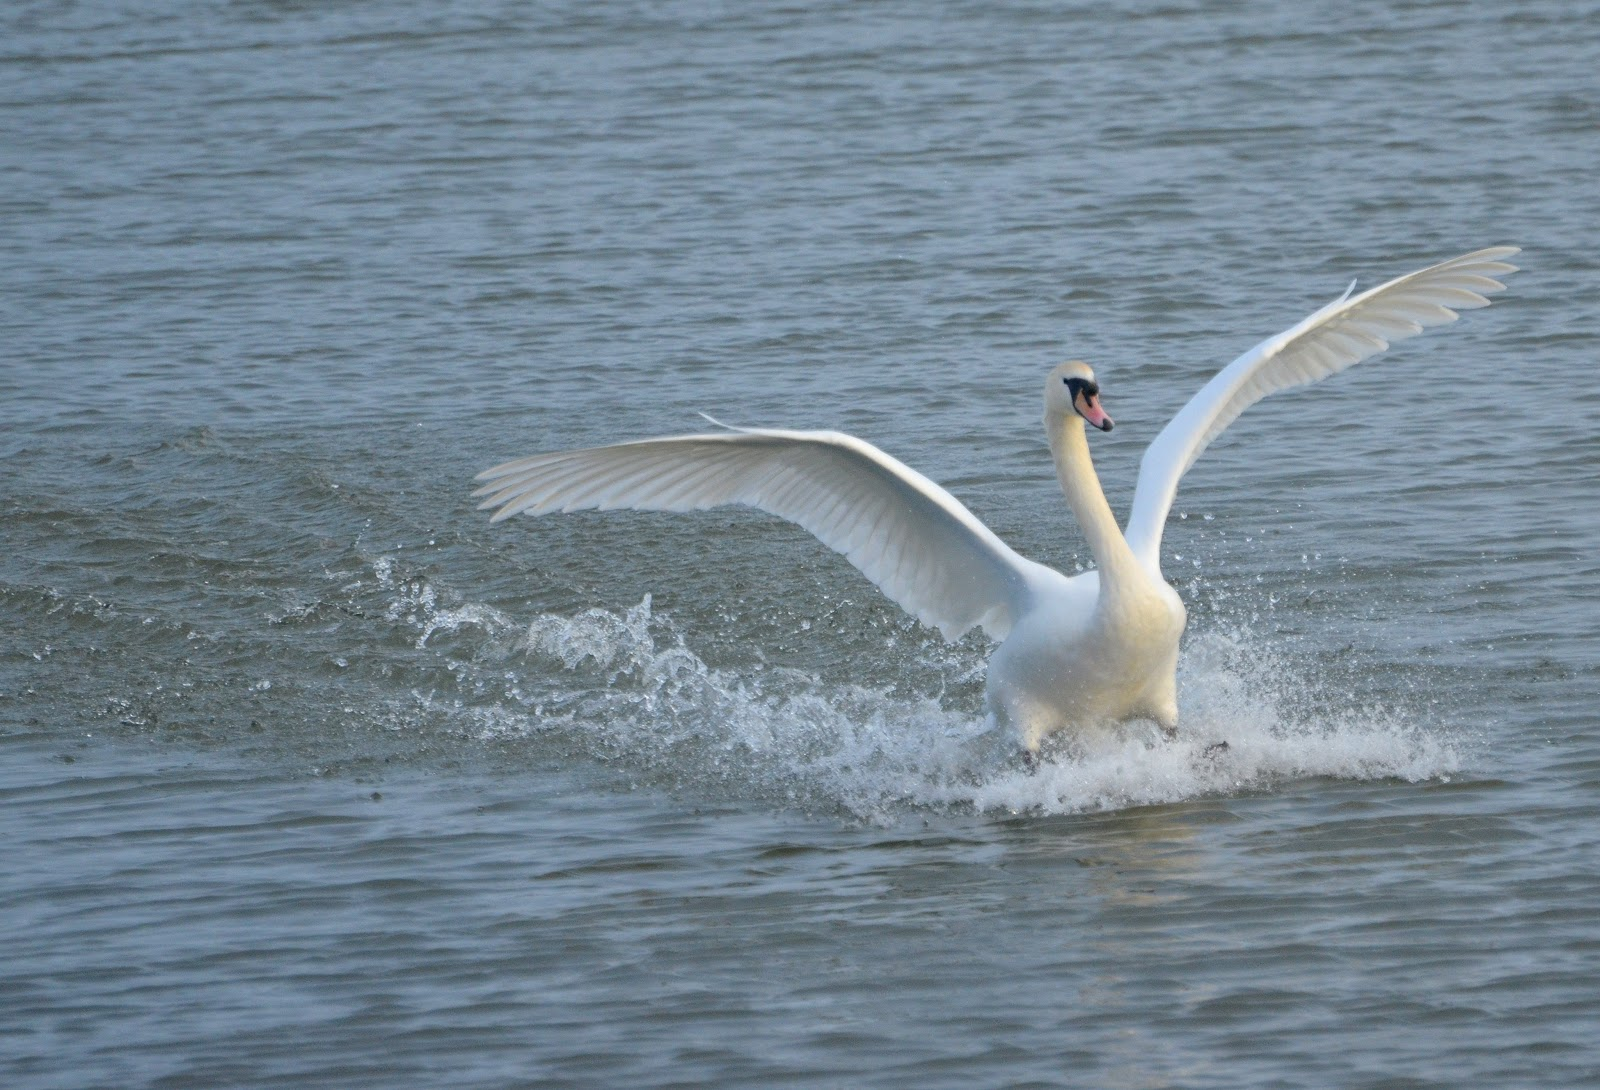 The Early Birder: There once was an angry Mute Swan